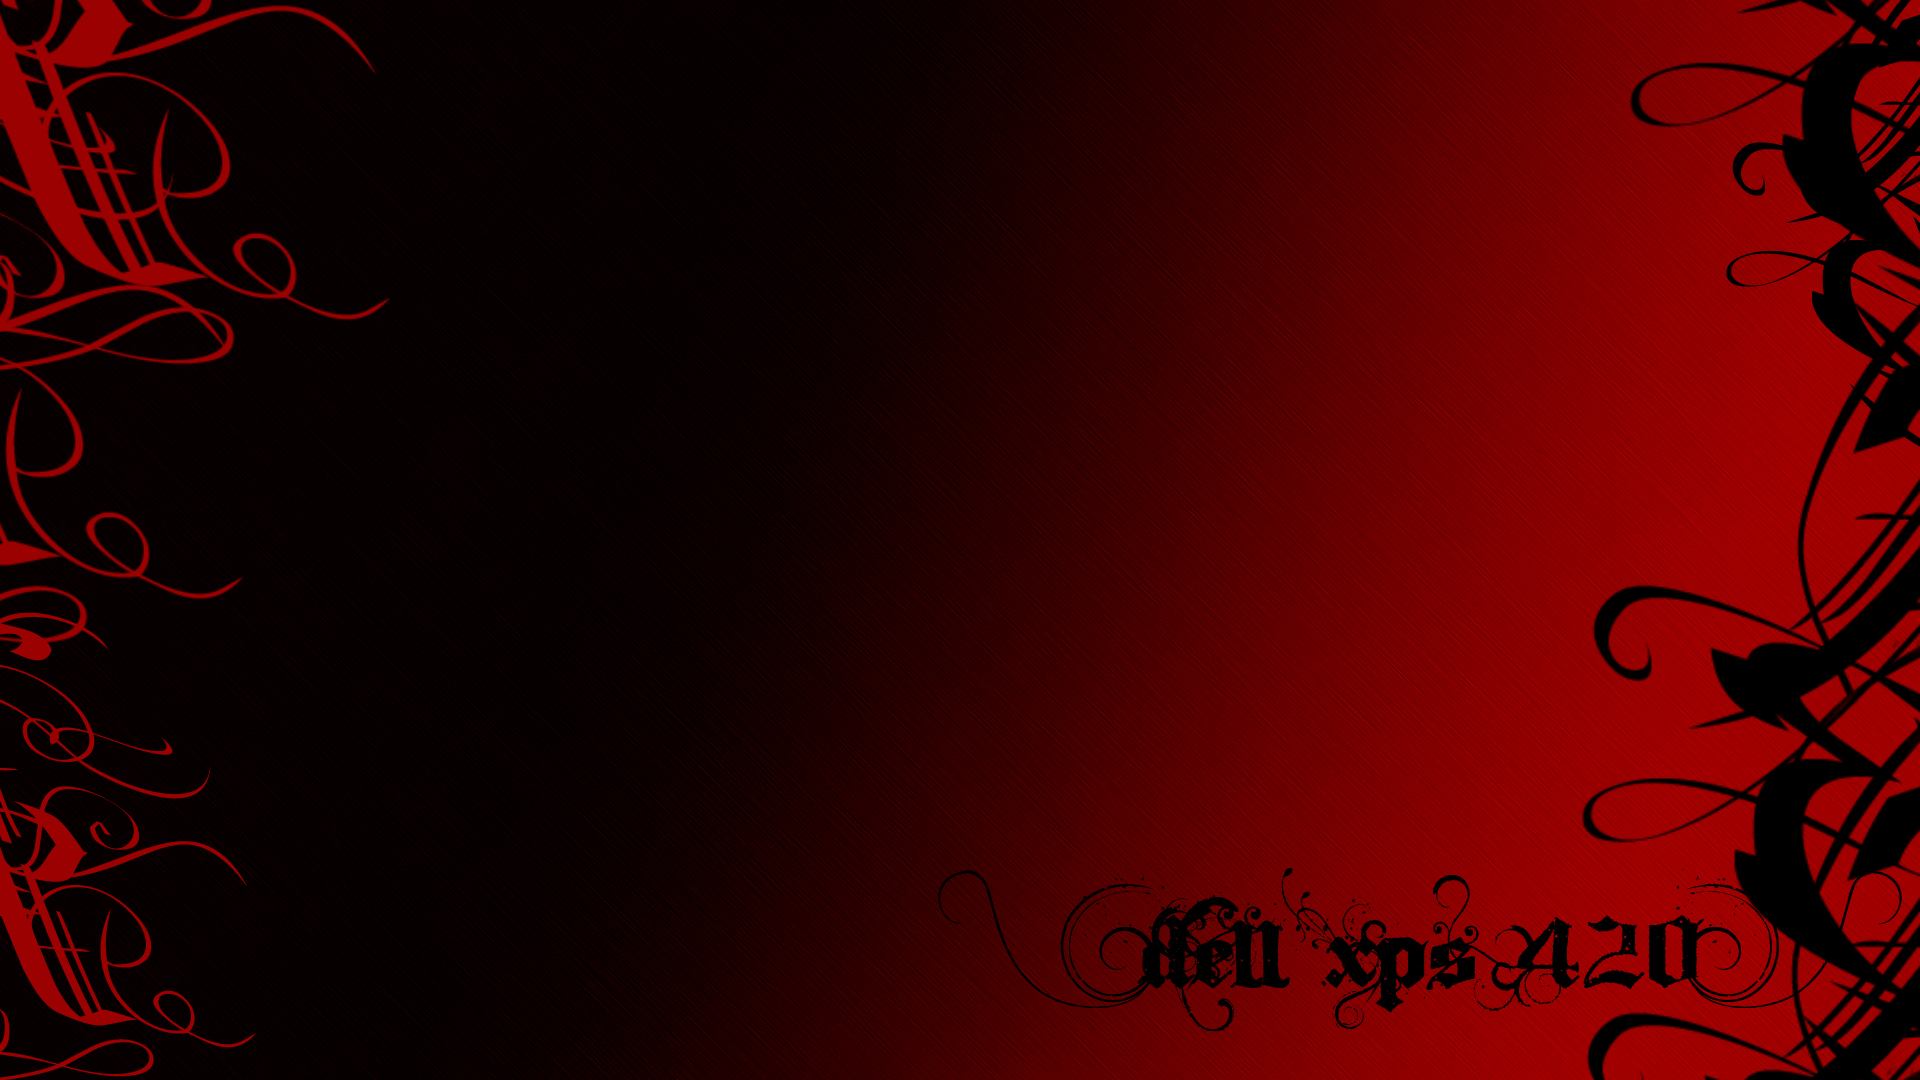 Dell Xps wallpaper 226725 1920x1080